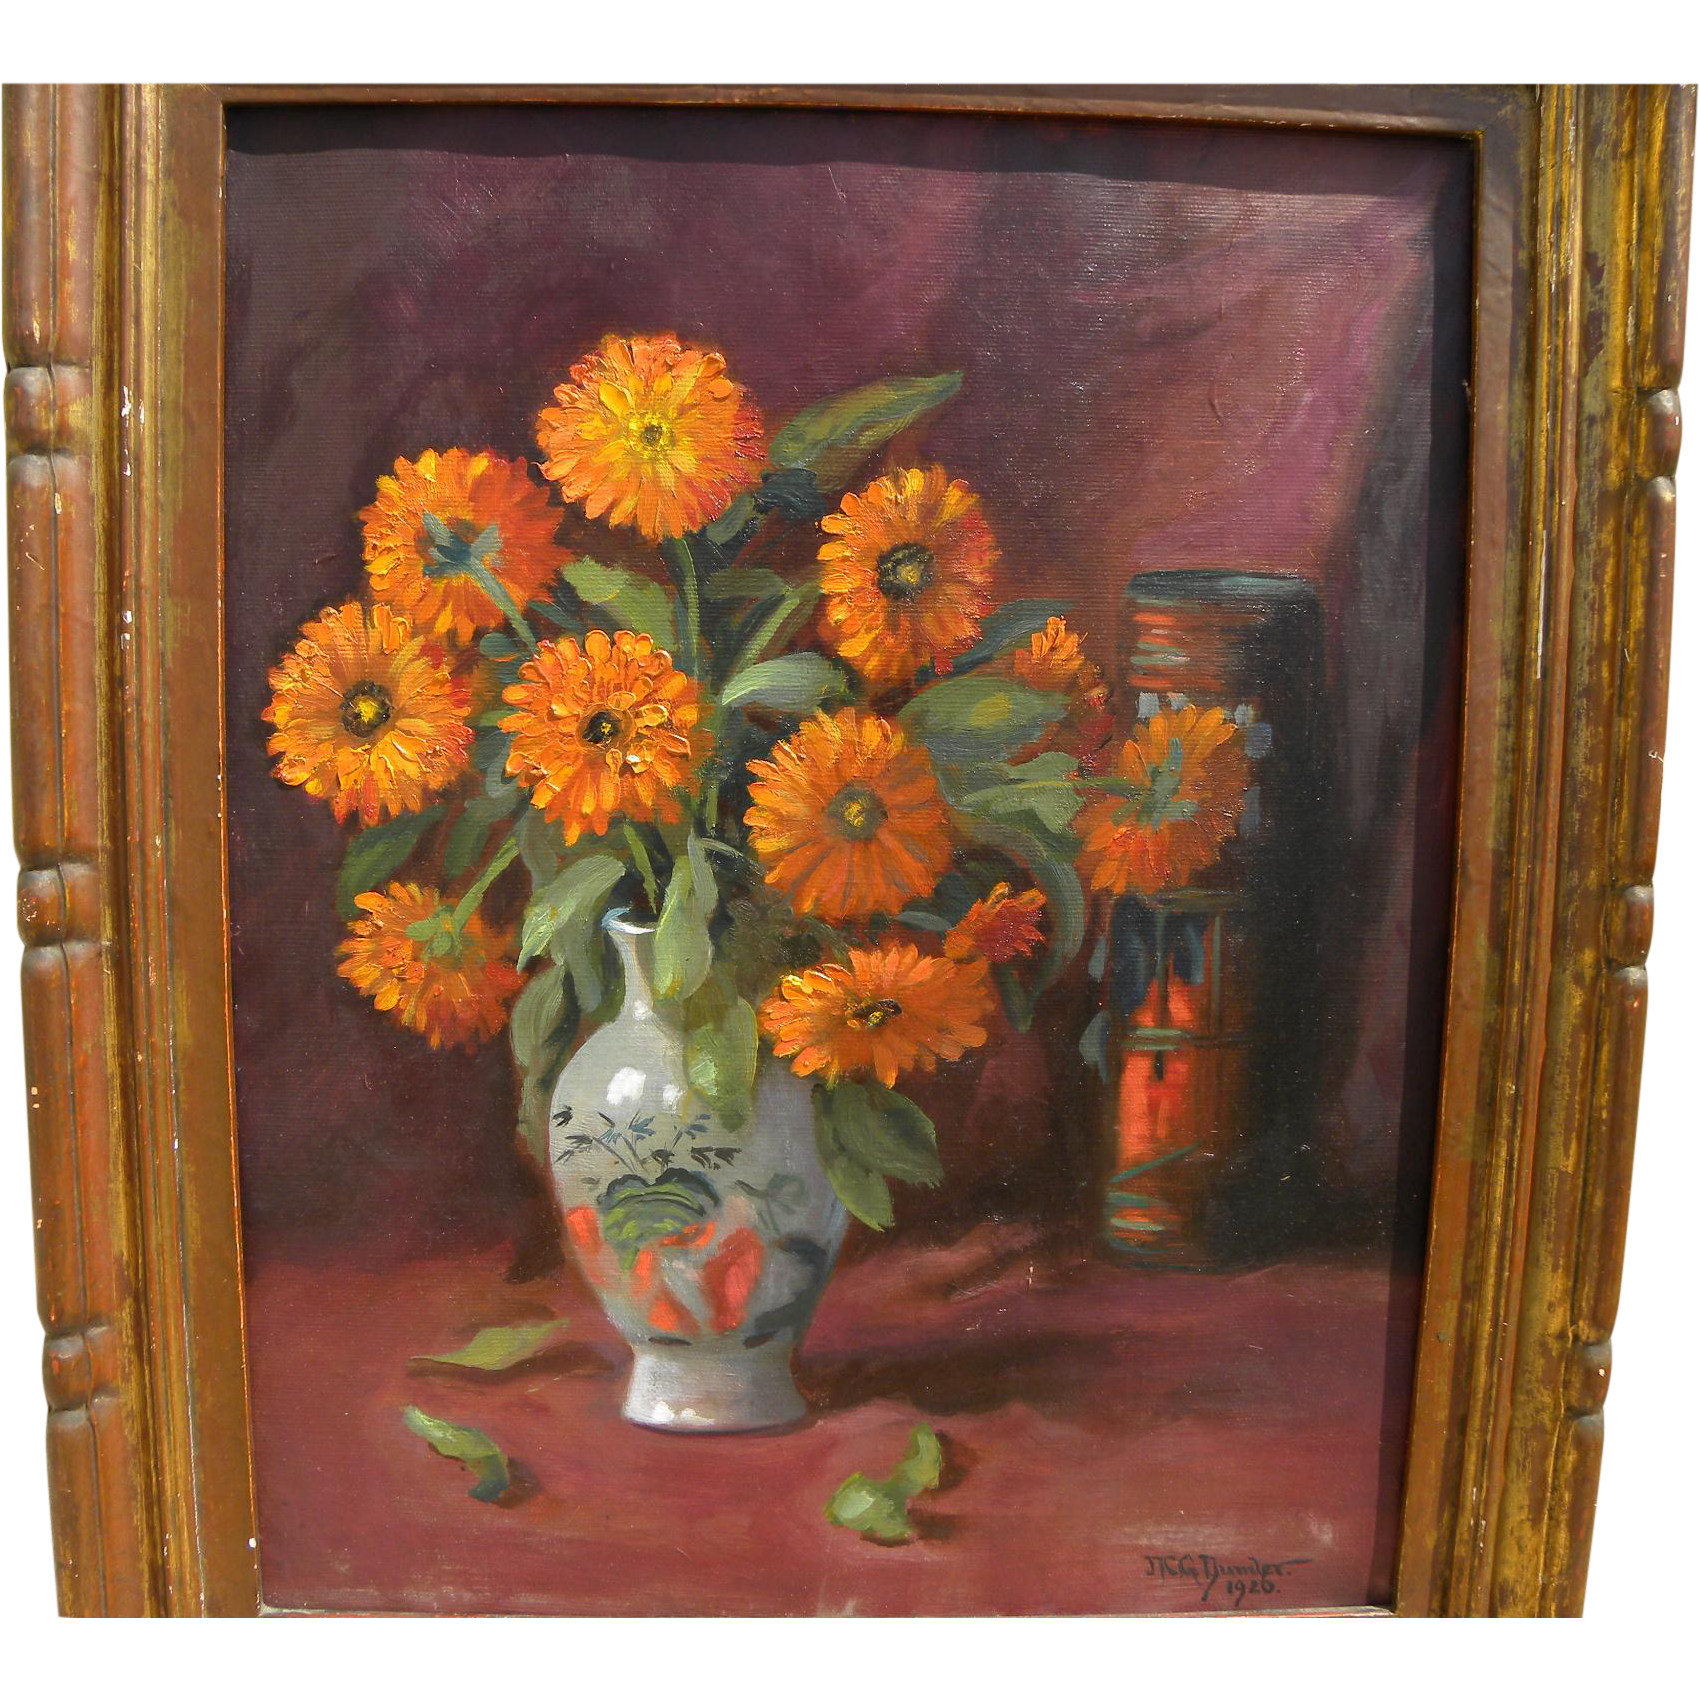 MARTIN DUMLER (1868-1958) floral tabletop still life by listed Cincinnati Ohio artist